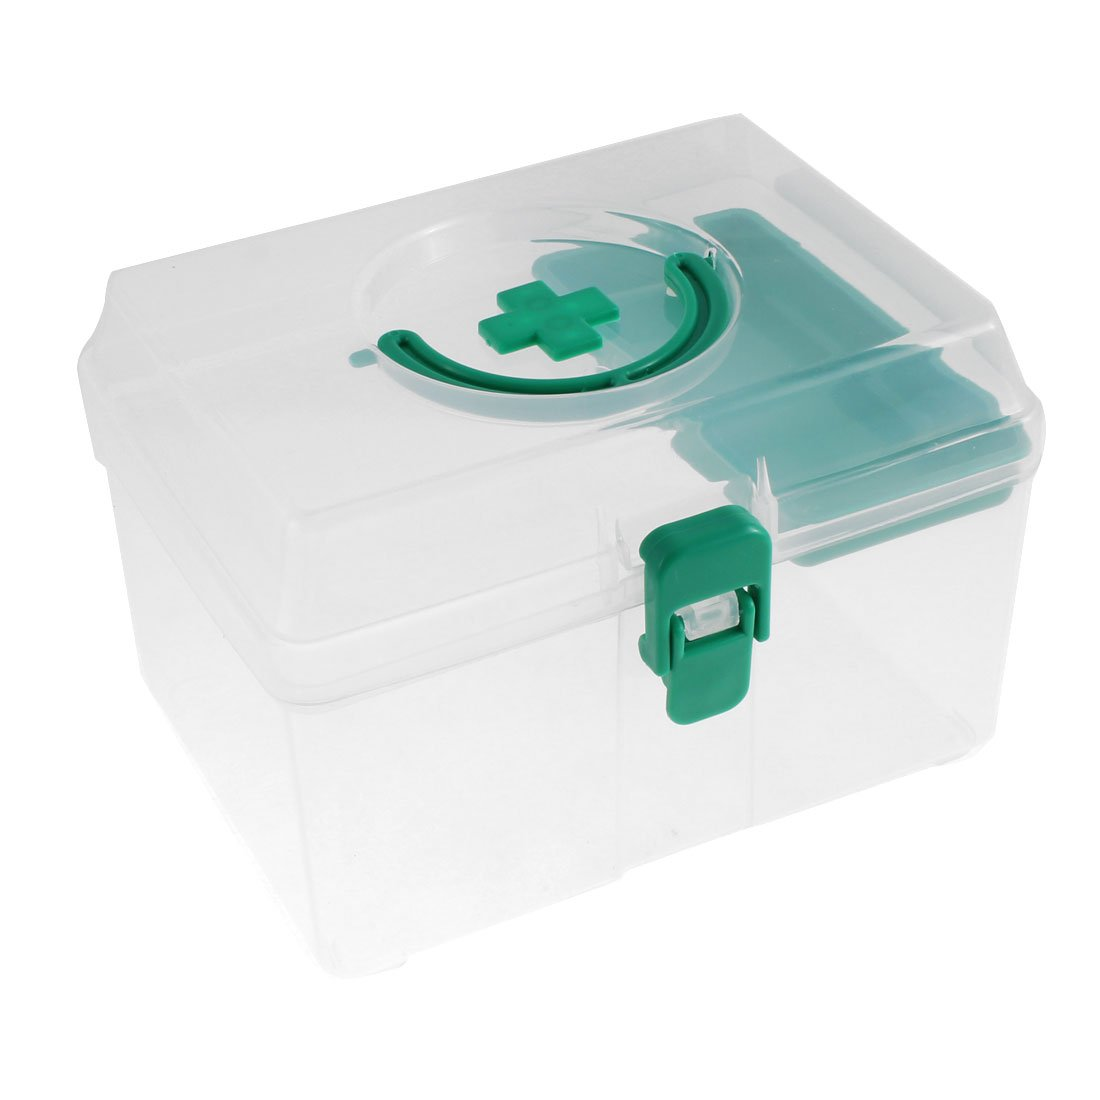 uxcell® Plastic Medicine Pill Storage First Aid Case Box Container Green Clear